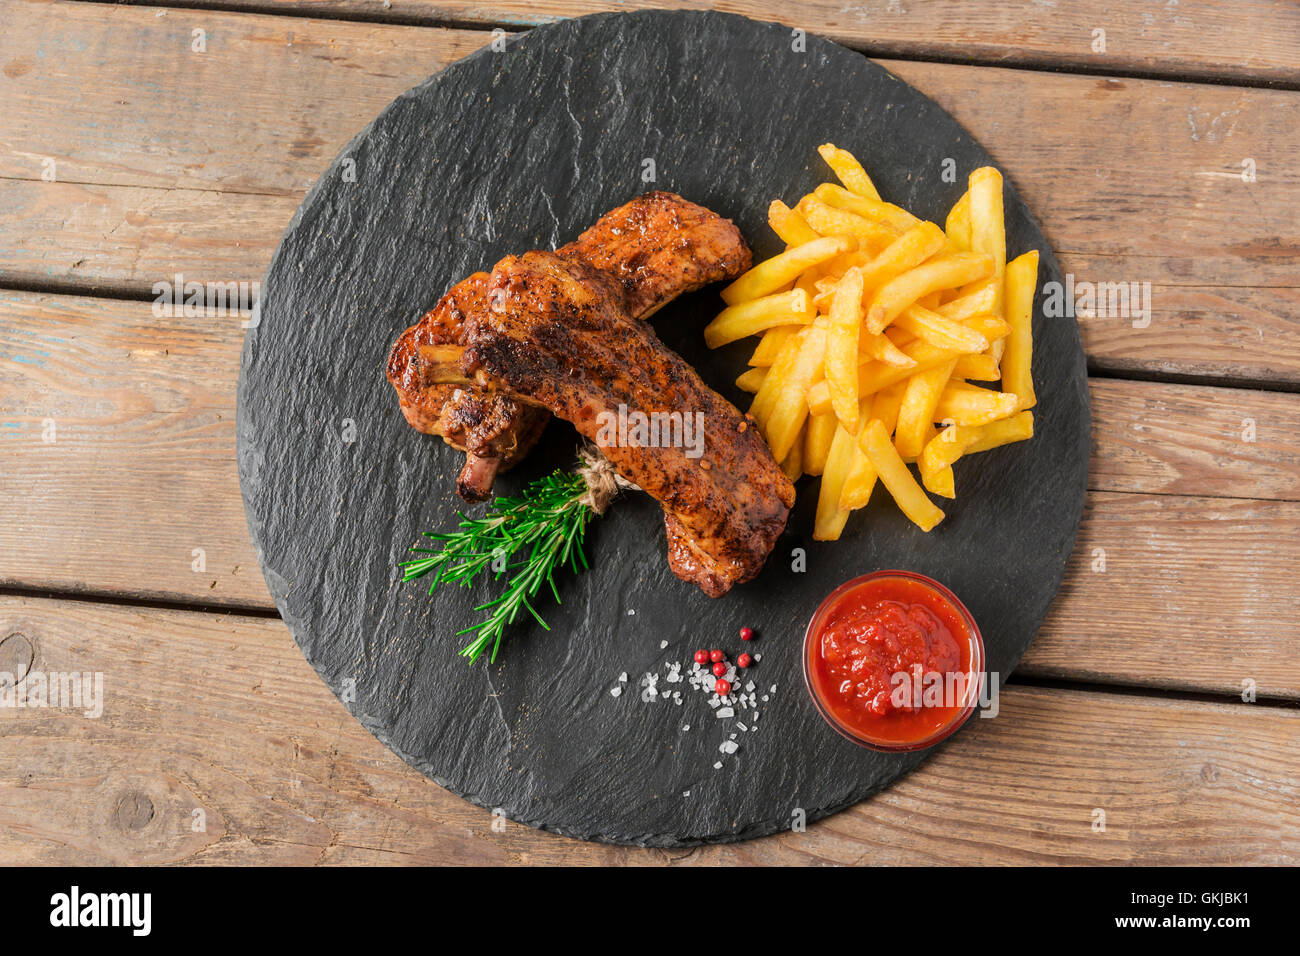 baked pork ribs with french fries and red sauce - Stock Image